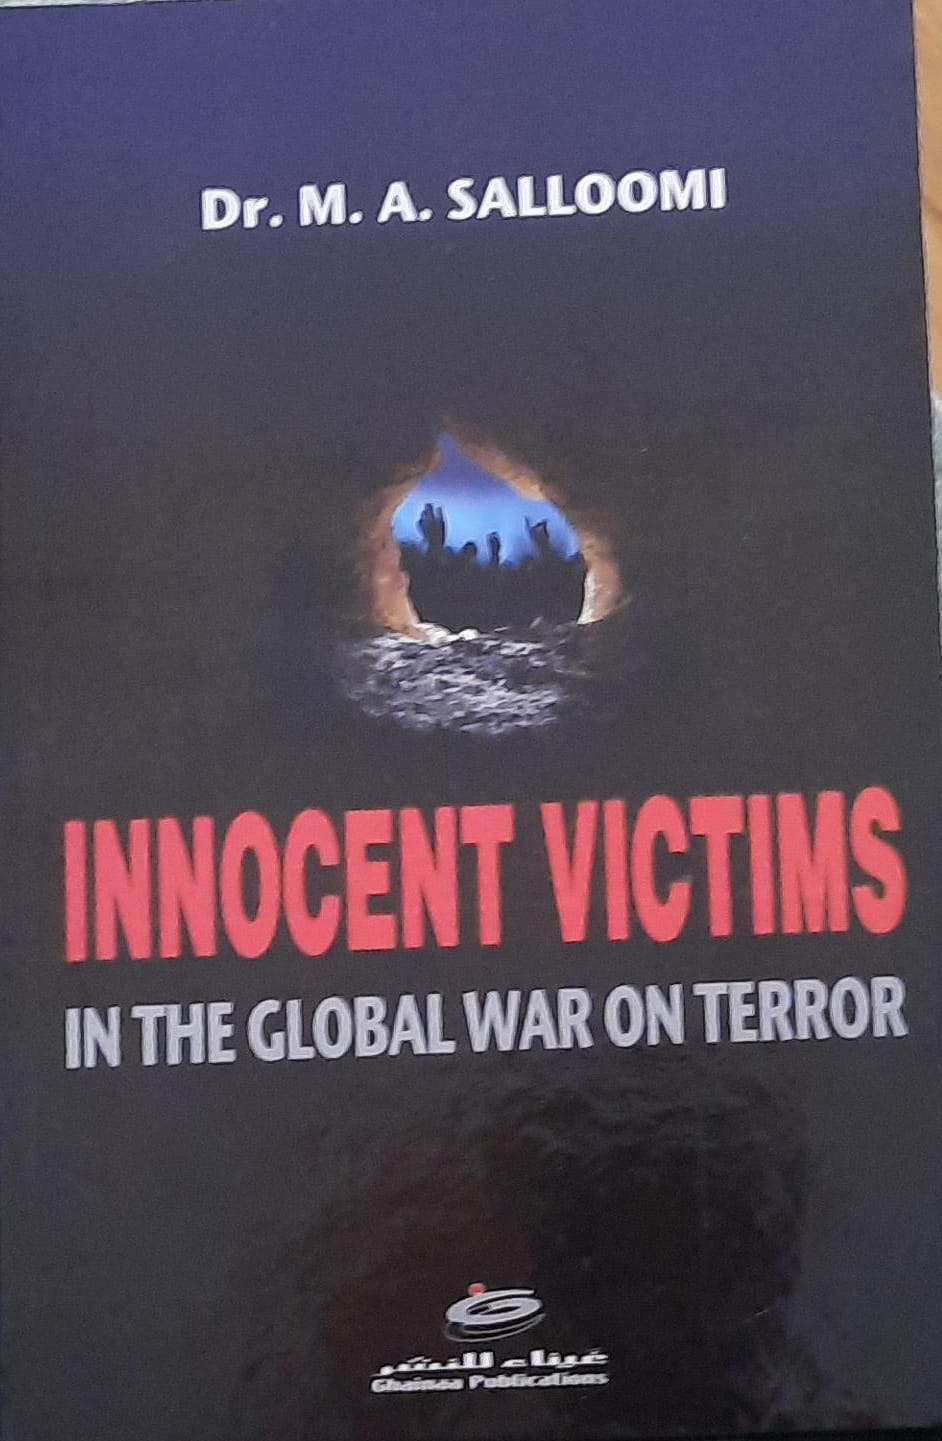 Image of Innocent Victims in the Global War on Terror